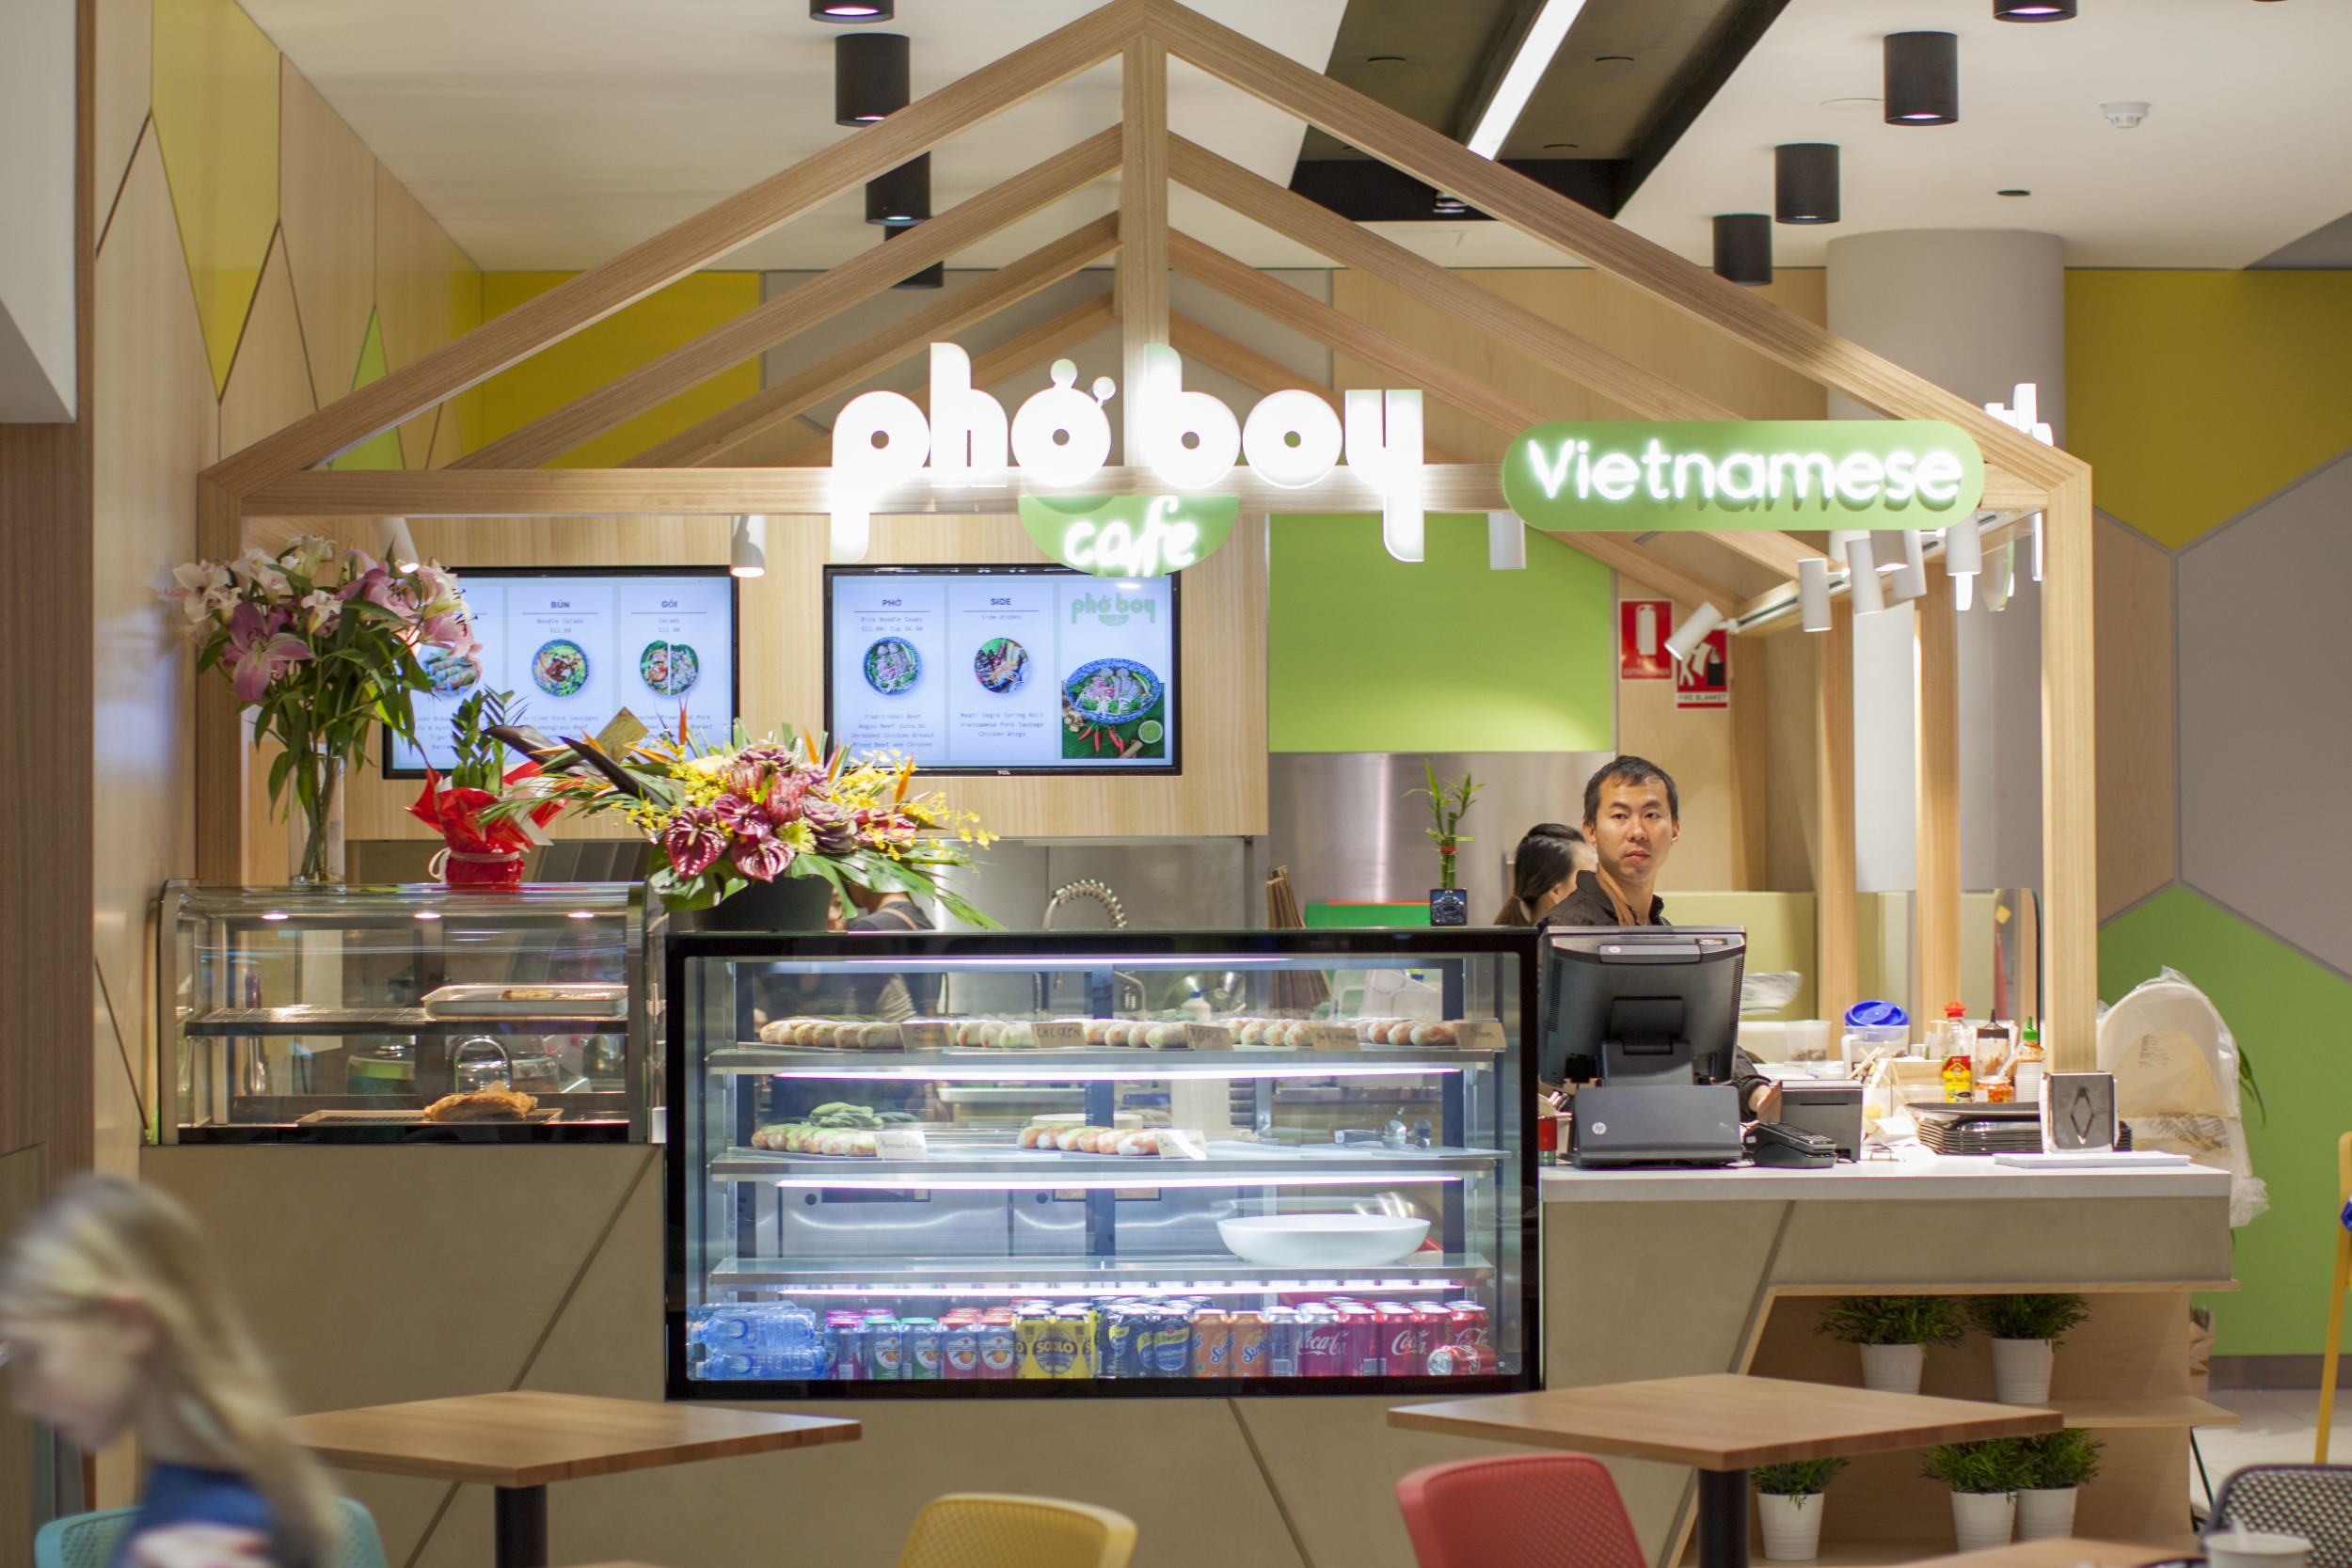 Cafe design and fit-out